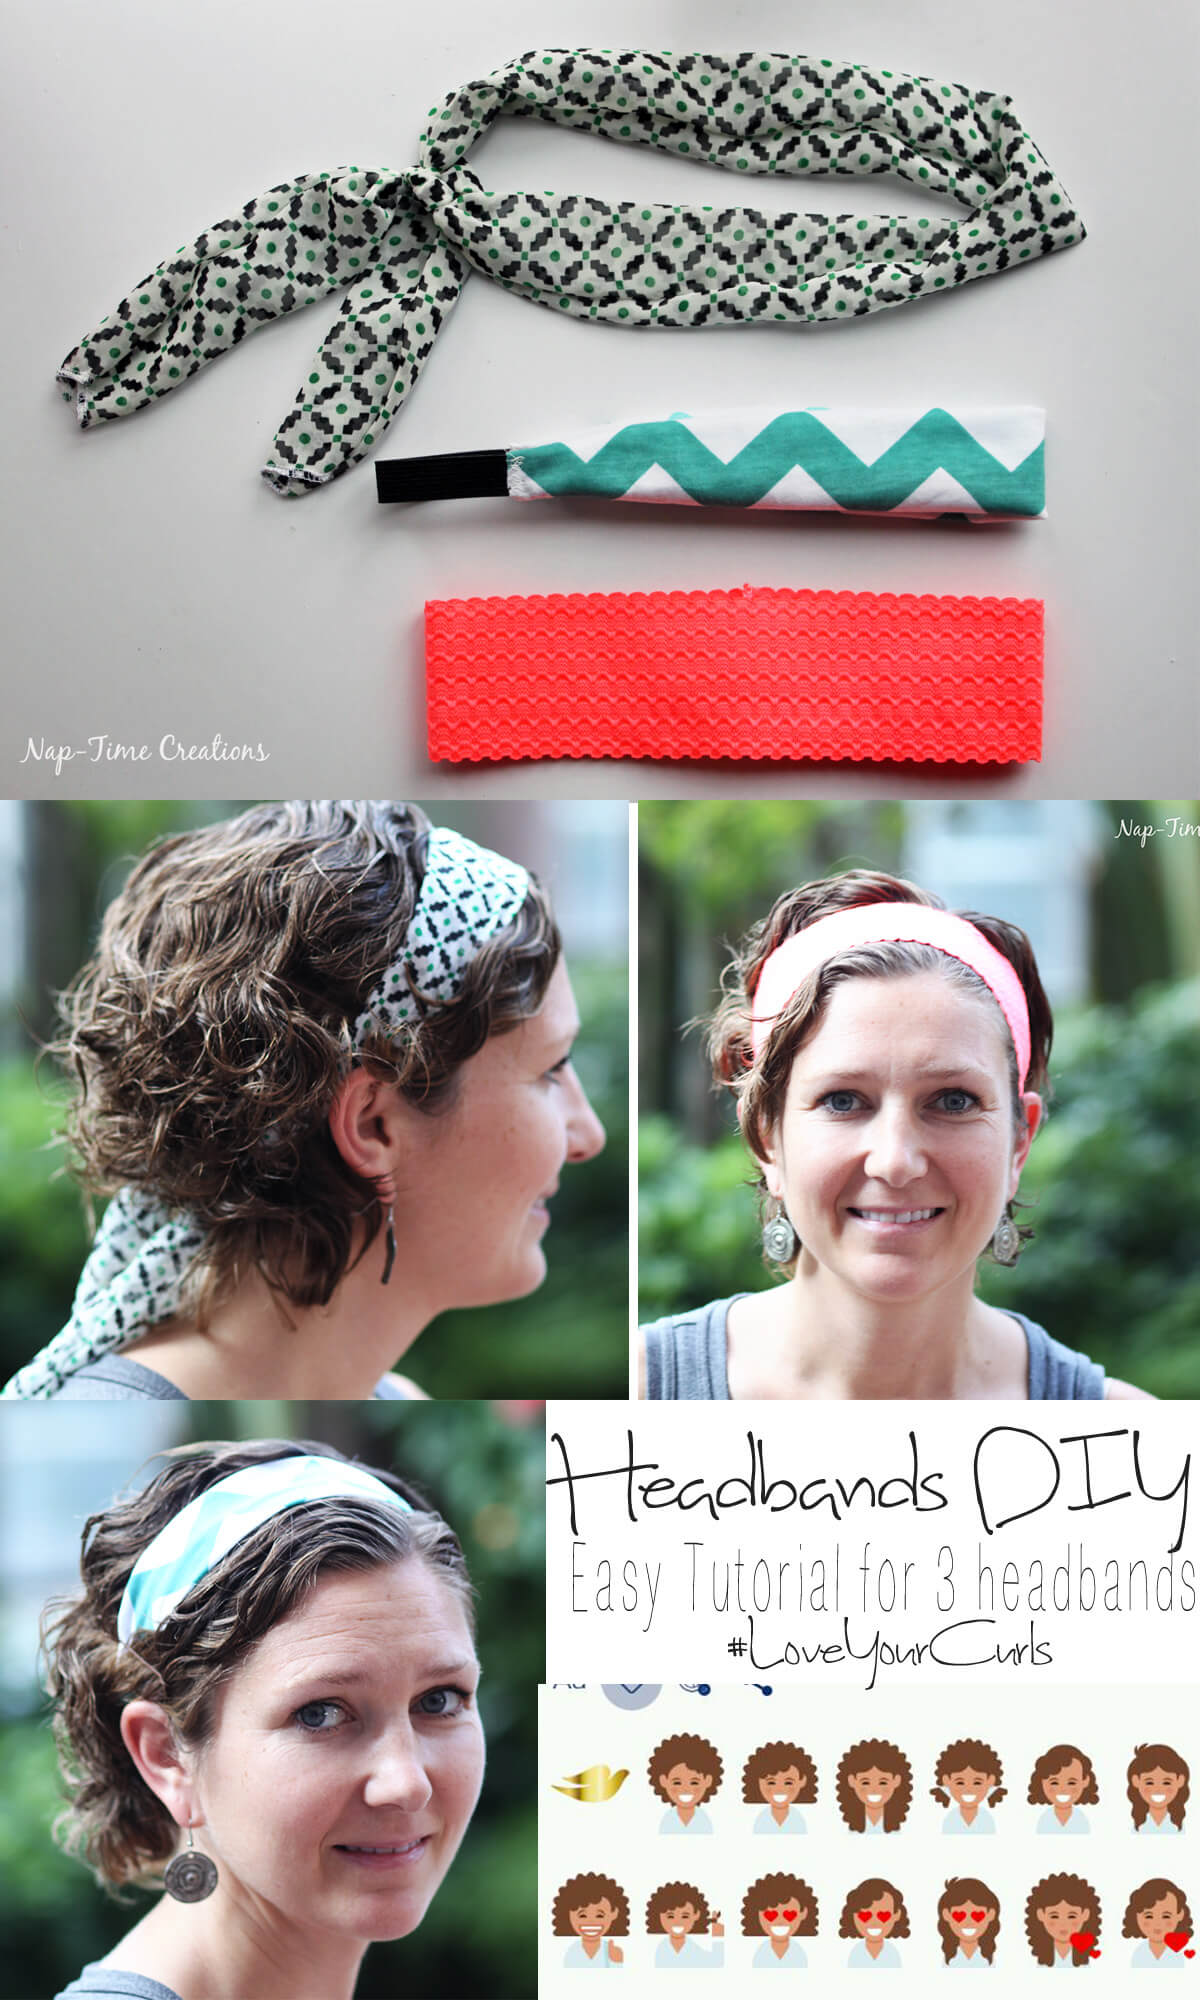 Easy Headbands DIY #LoveYourCurls #PMedia {ad} On Nap-Time Creations